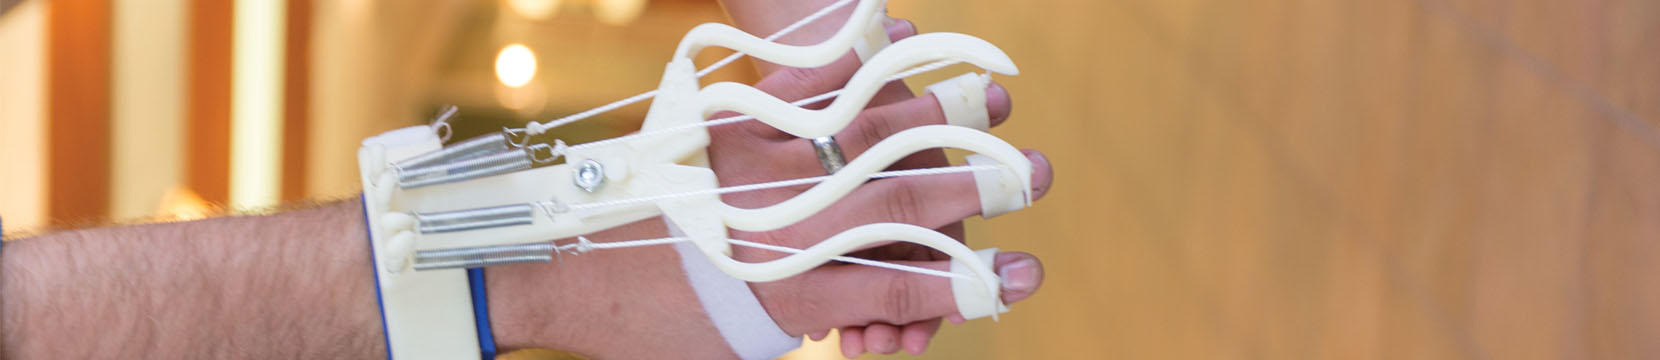 3D printer is resource for addressing patient needs